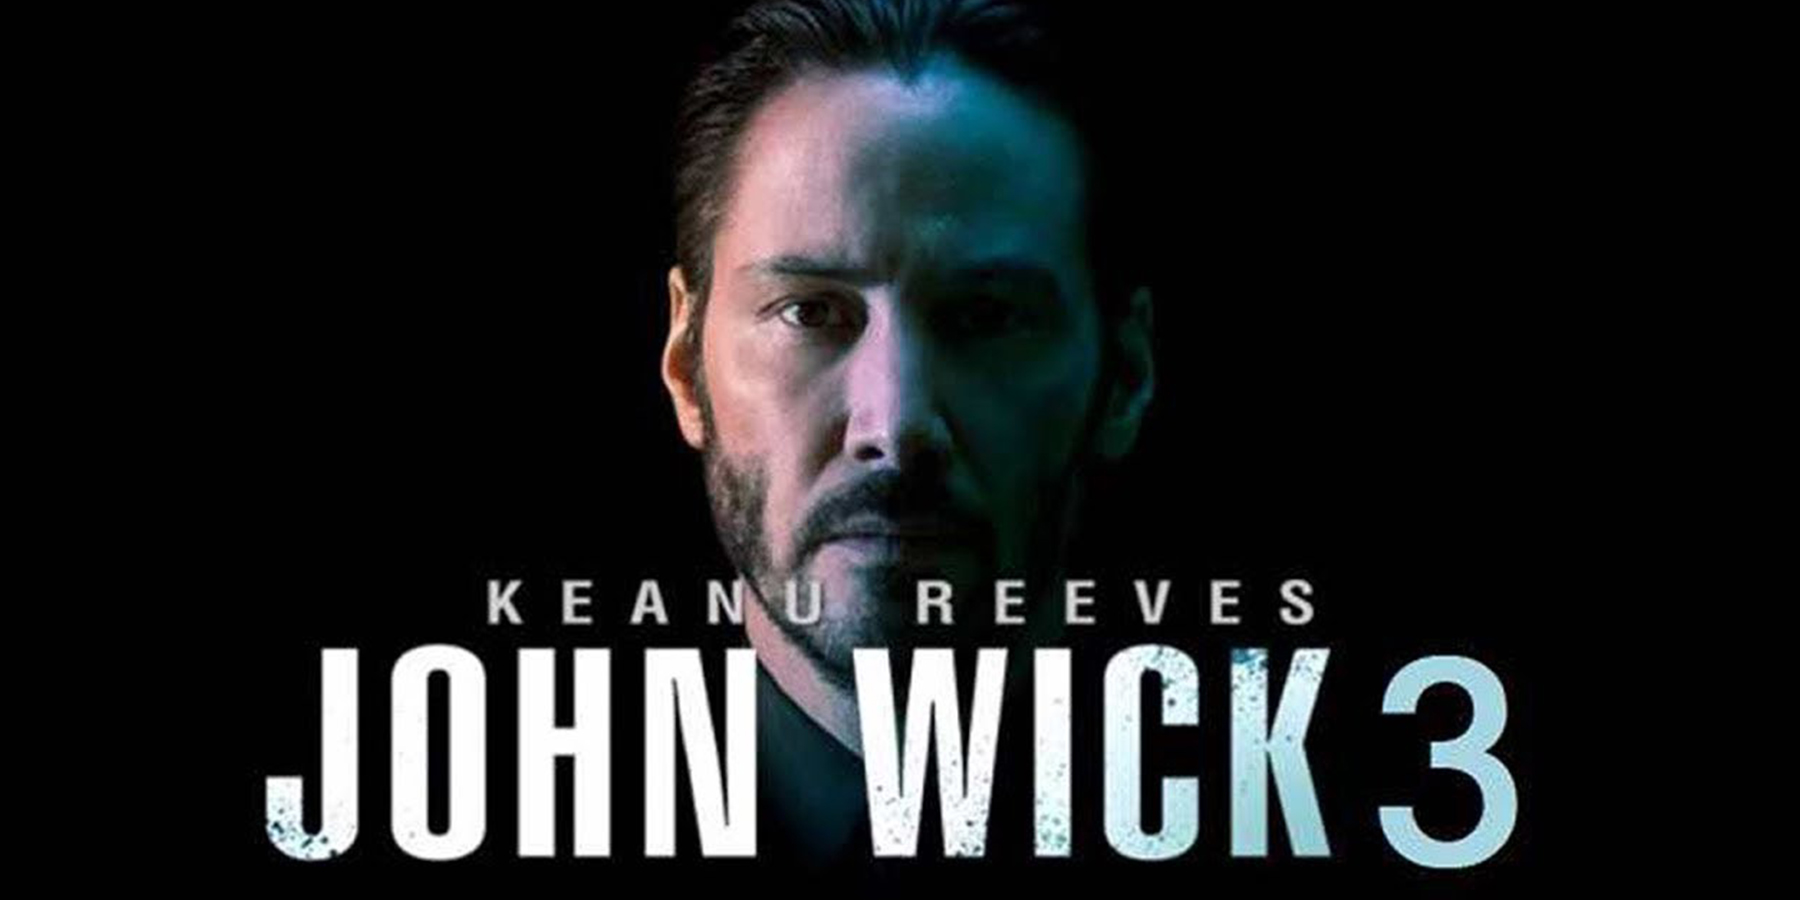 John Wick 3 Movie Poster Long